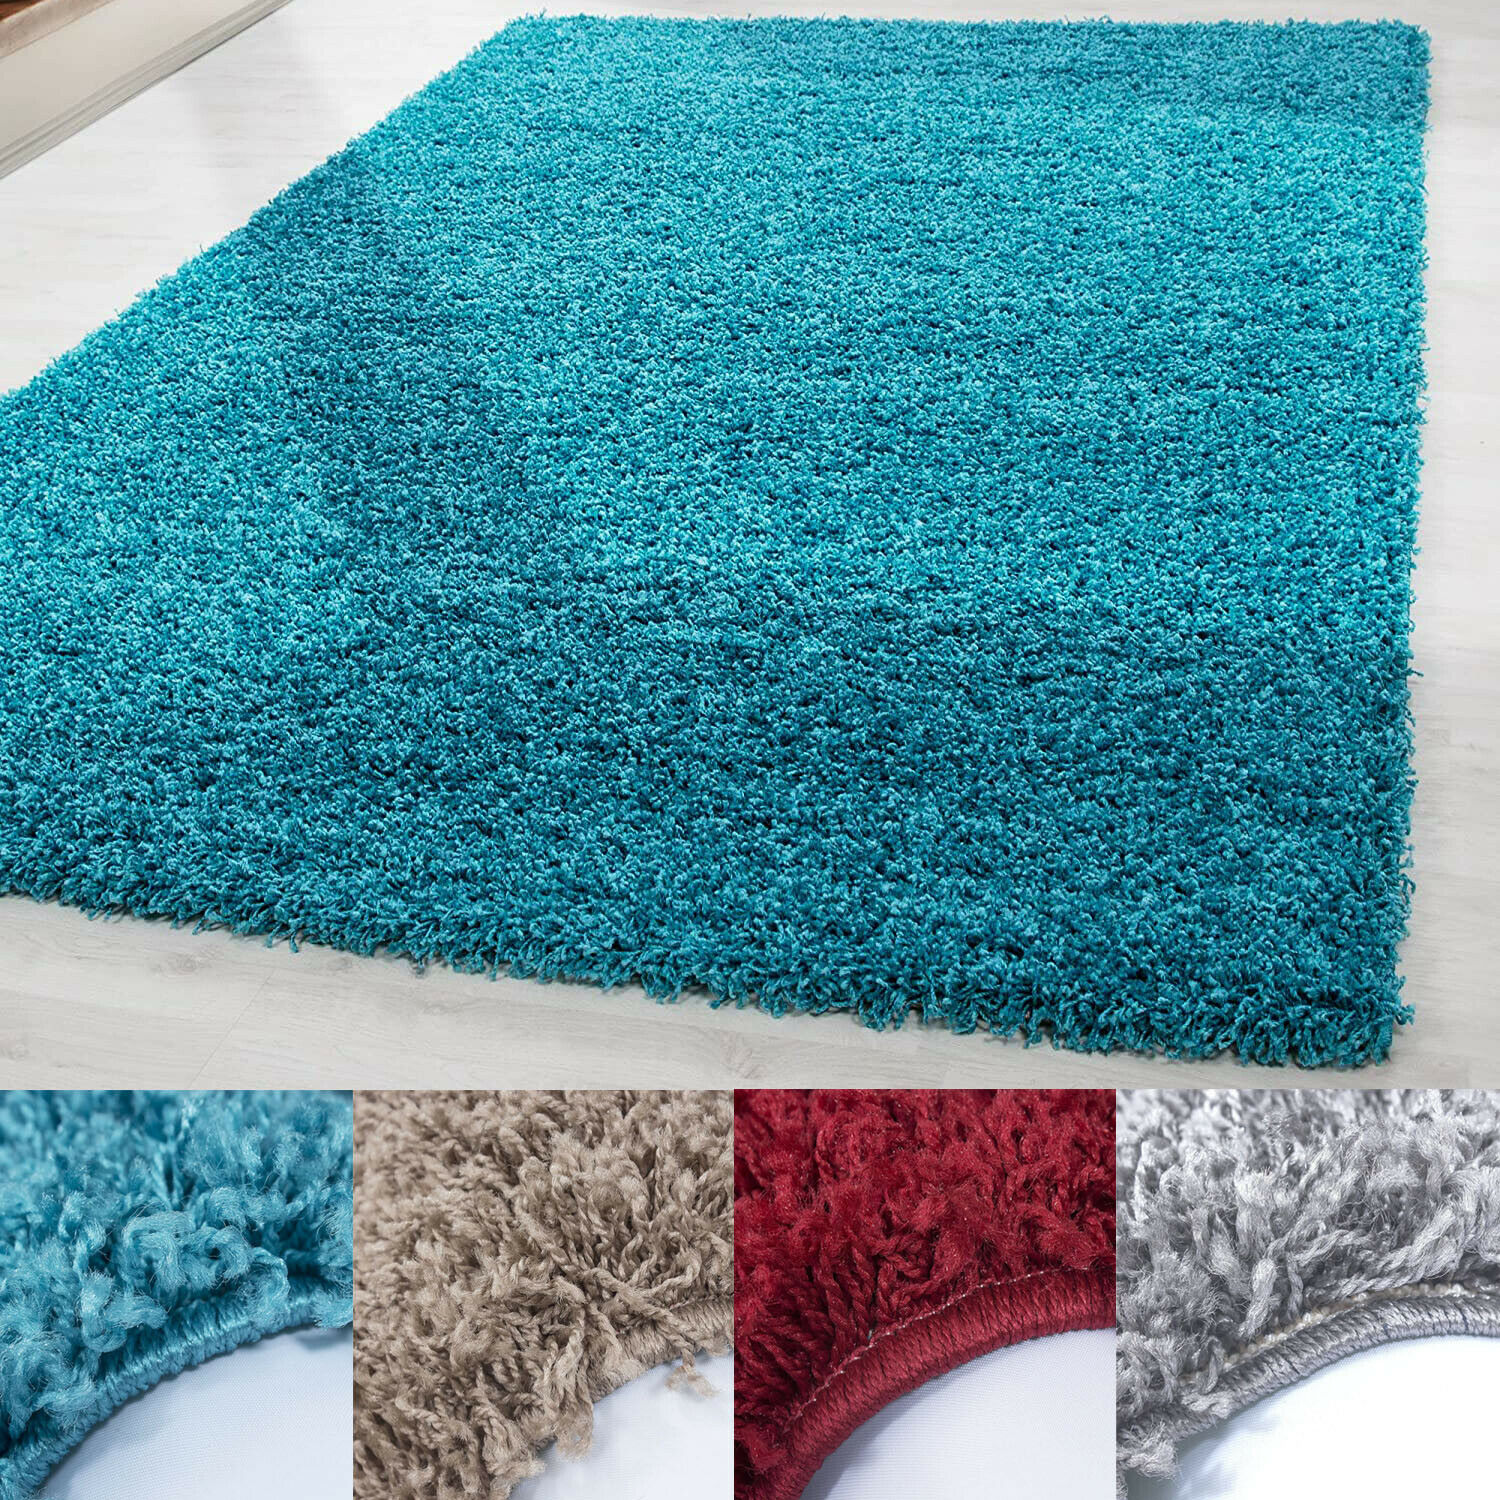 SHAGGY RUG BRILLIANCE SOFT PILE SMALL EXTRA LARGE NEW MODERN NON-SHEDDING CARPET